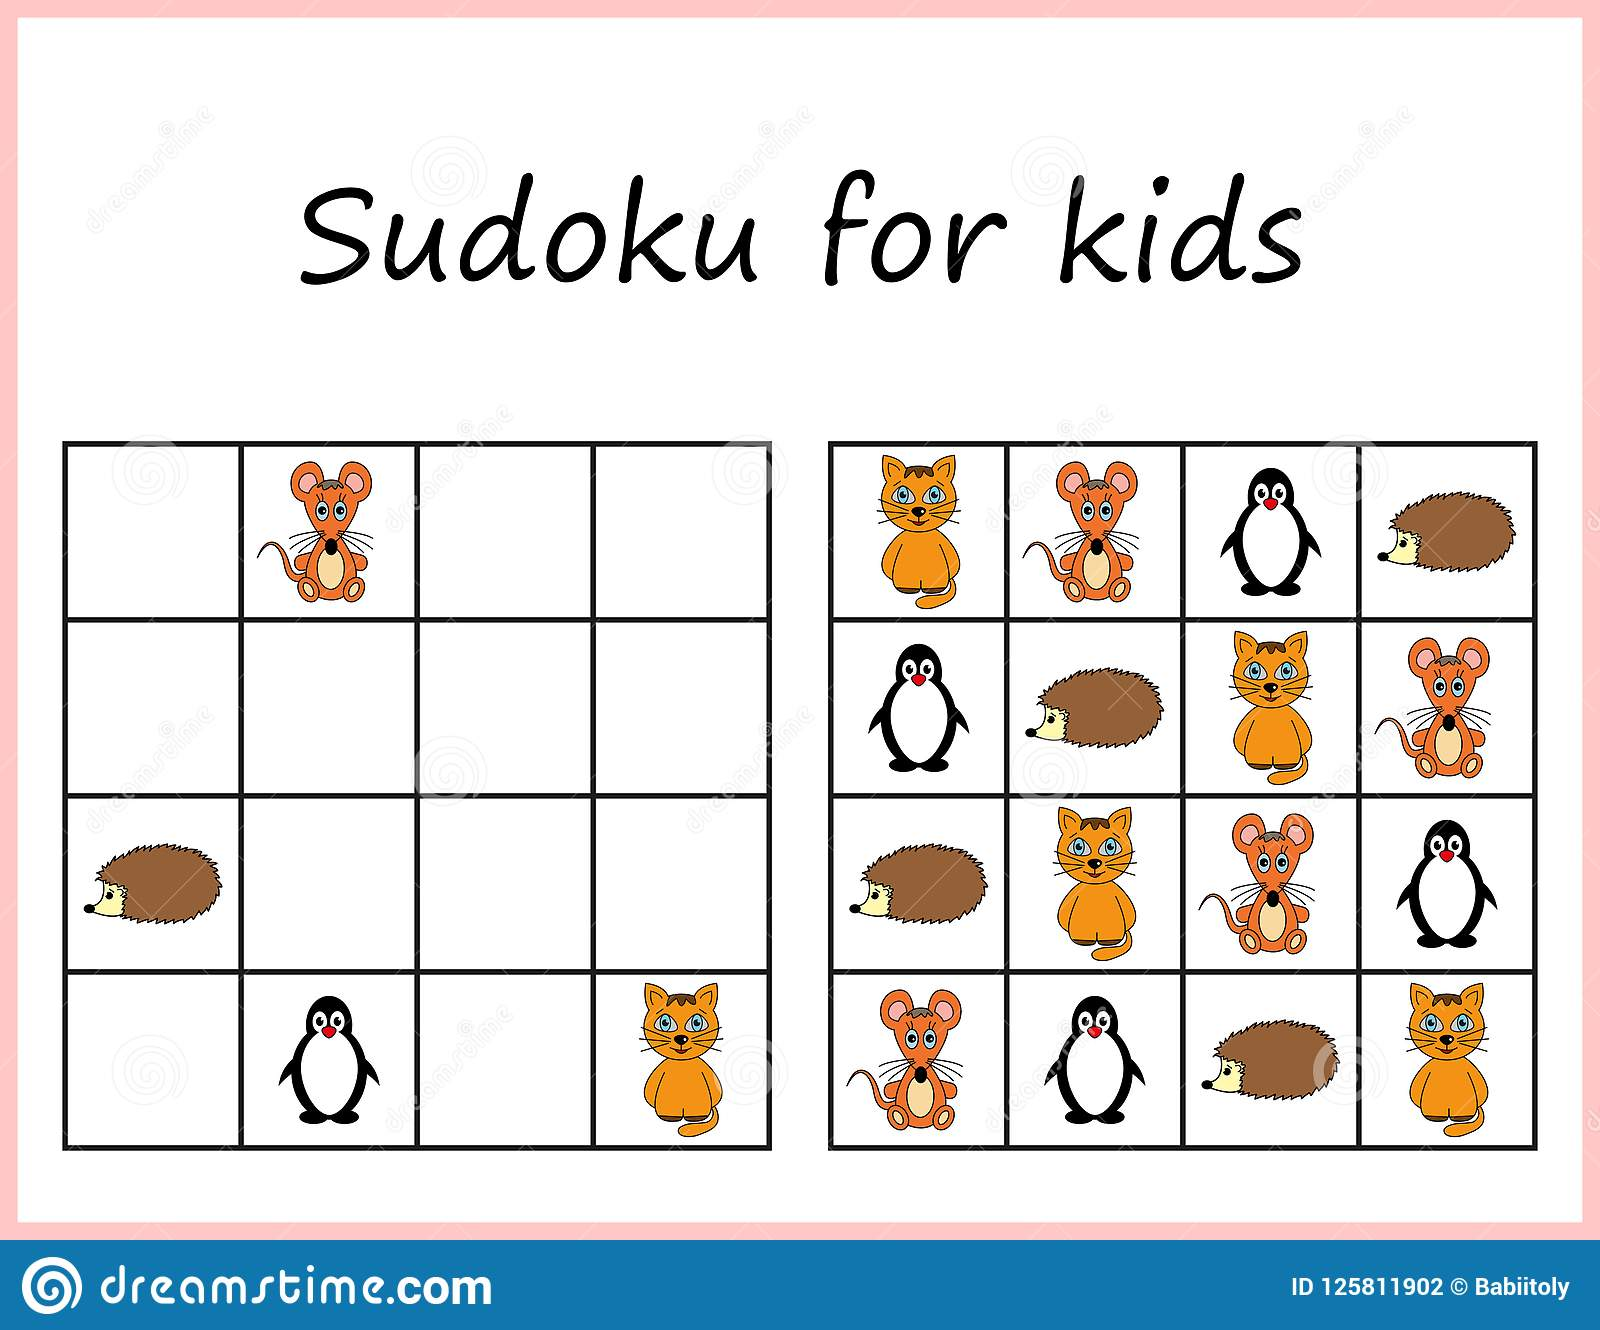 picture about Sudoku Printable for Kids identify Sudoku For Little ones. Activity For Preschool Children, Exercising Logic